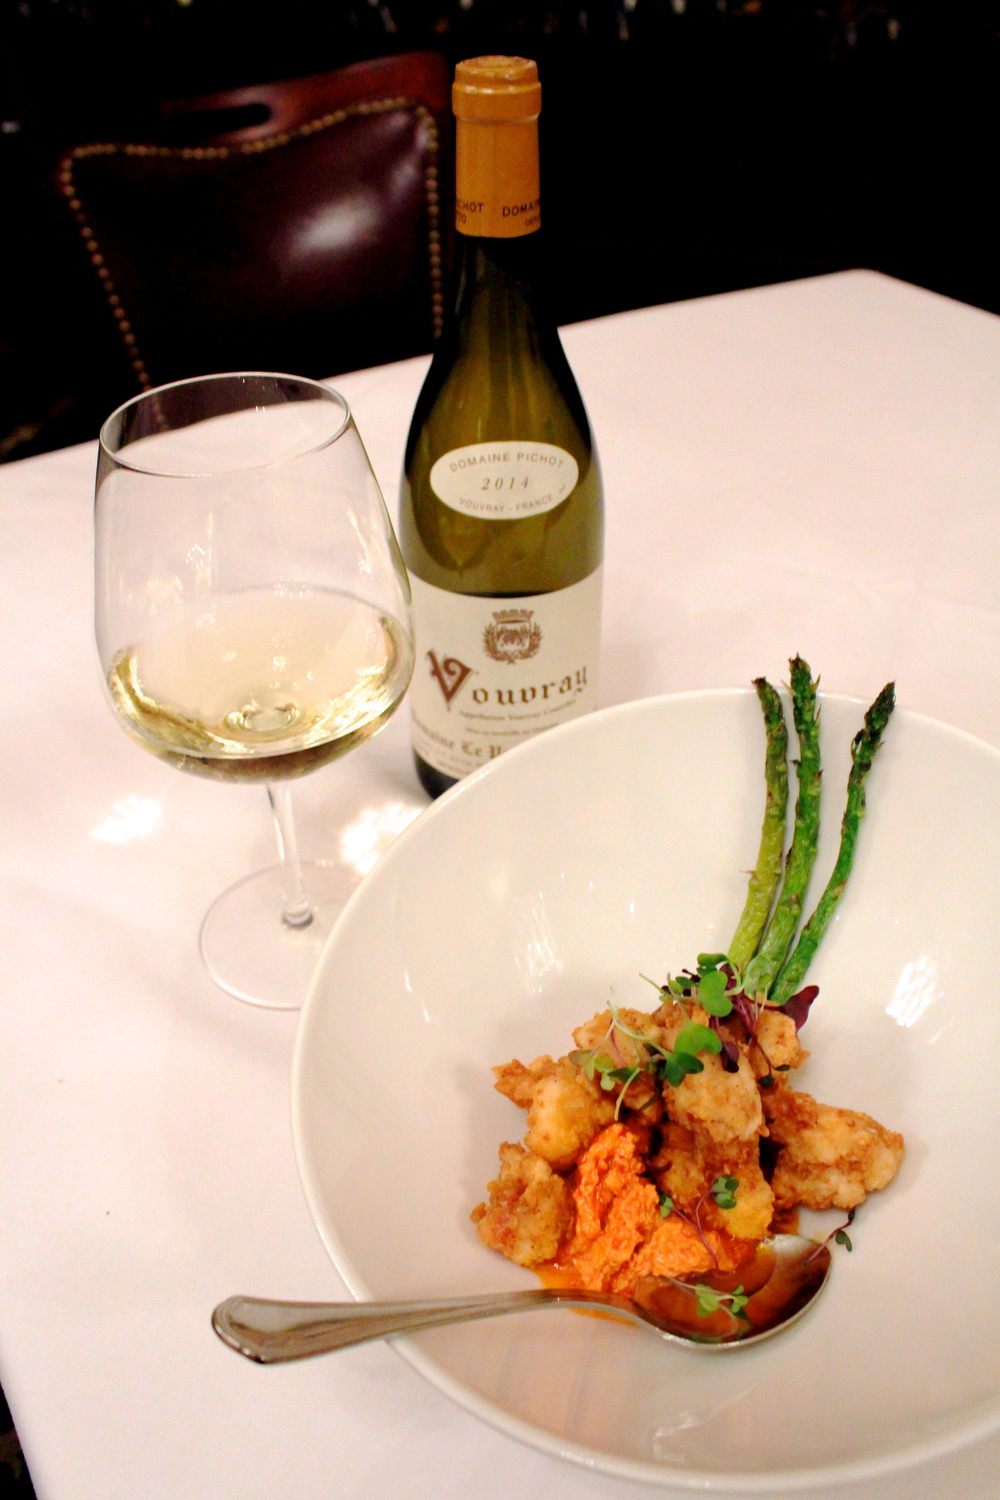 Chicken-fried lobster paired with a 2014 Vouvray at III Forks    Photo credit: Hannah Rose